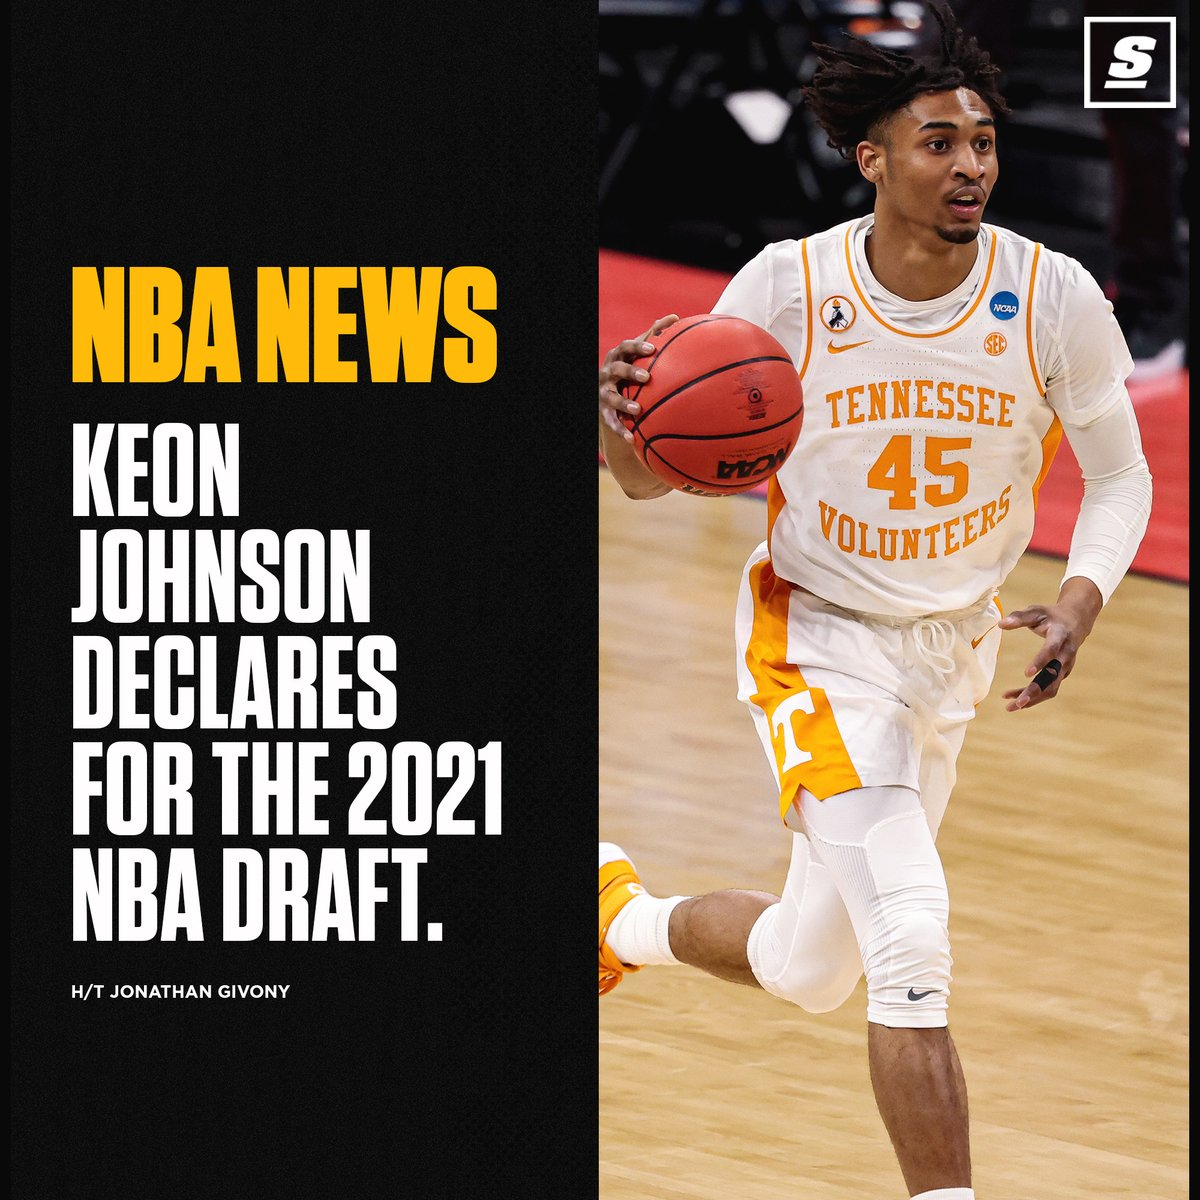 @theScore's photo on Keon Johnson